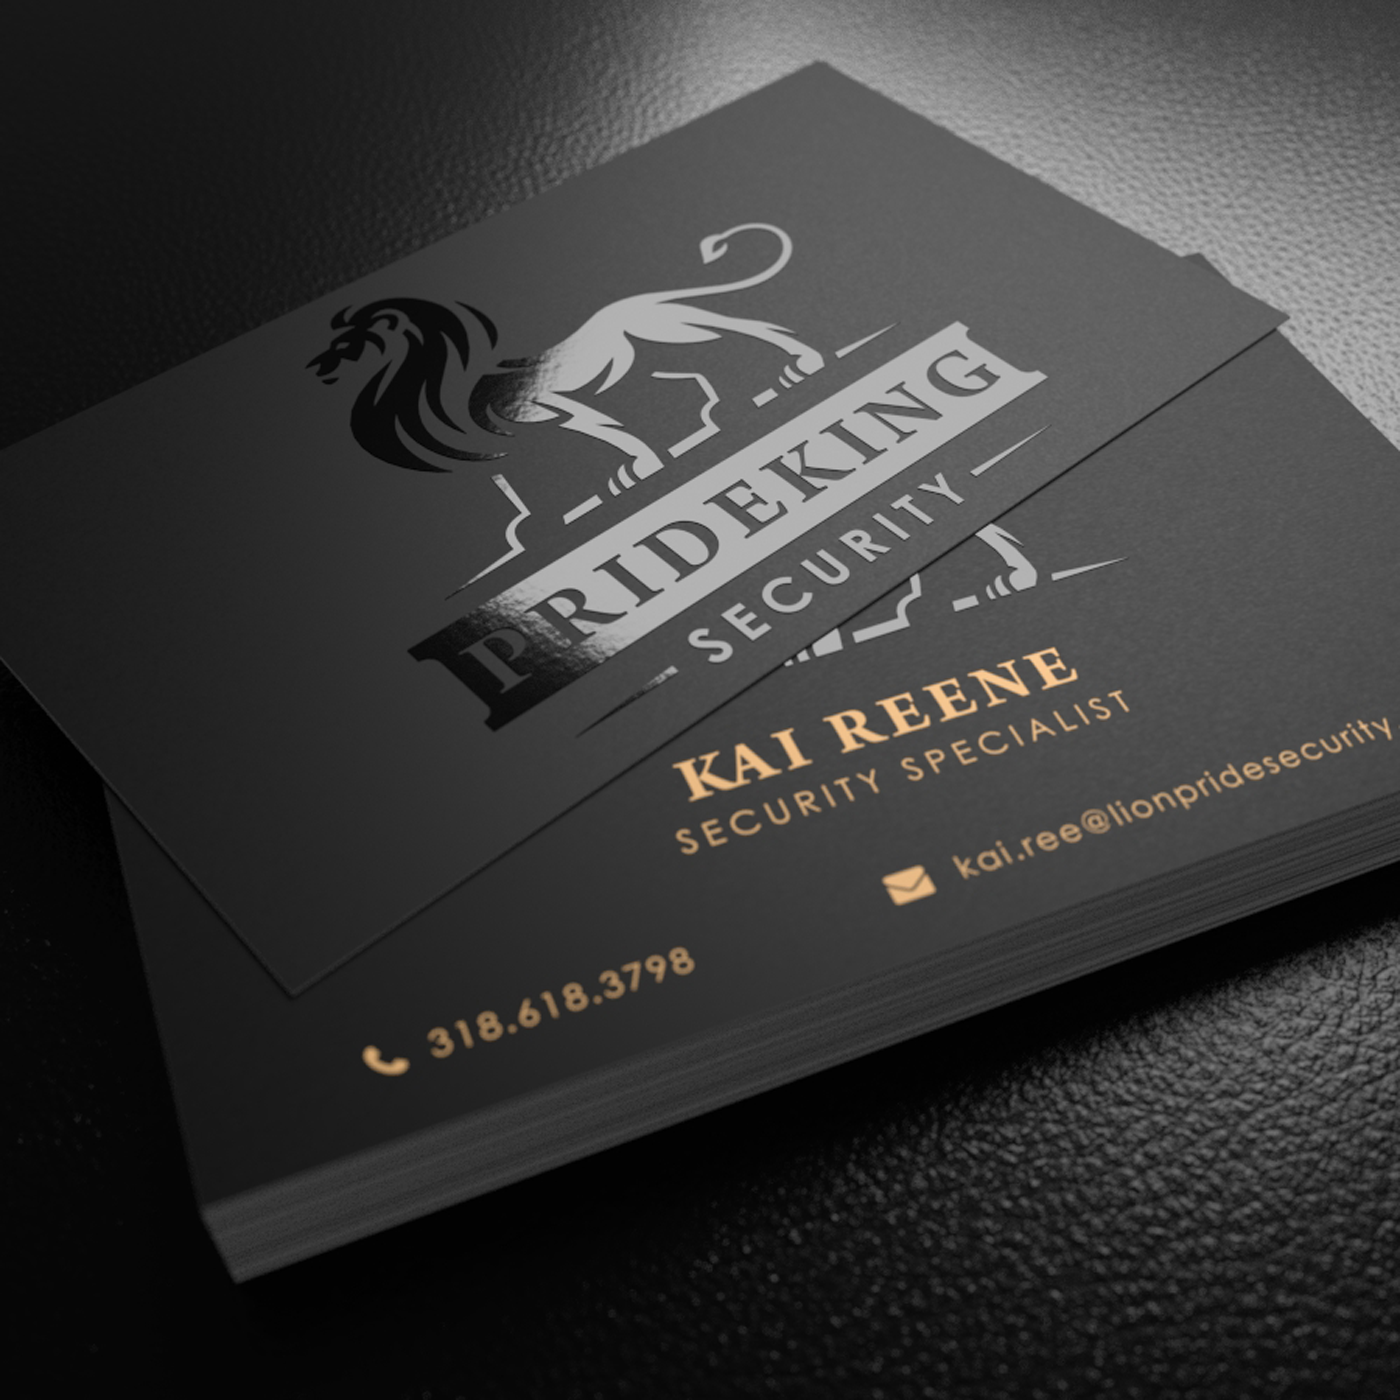 Spot UV Business Cards - Standard, Slim, Round Corners | UPrinting